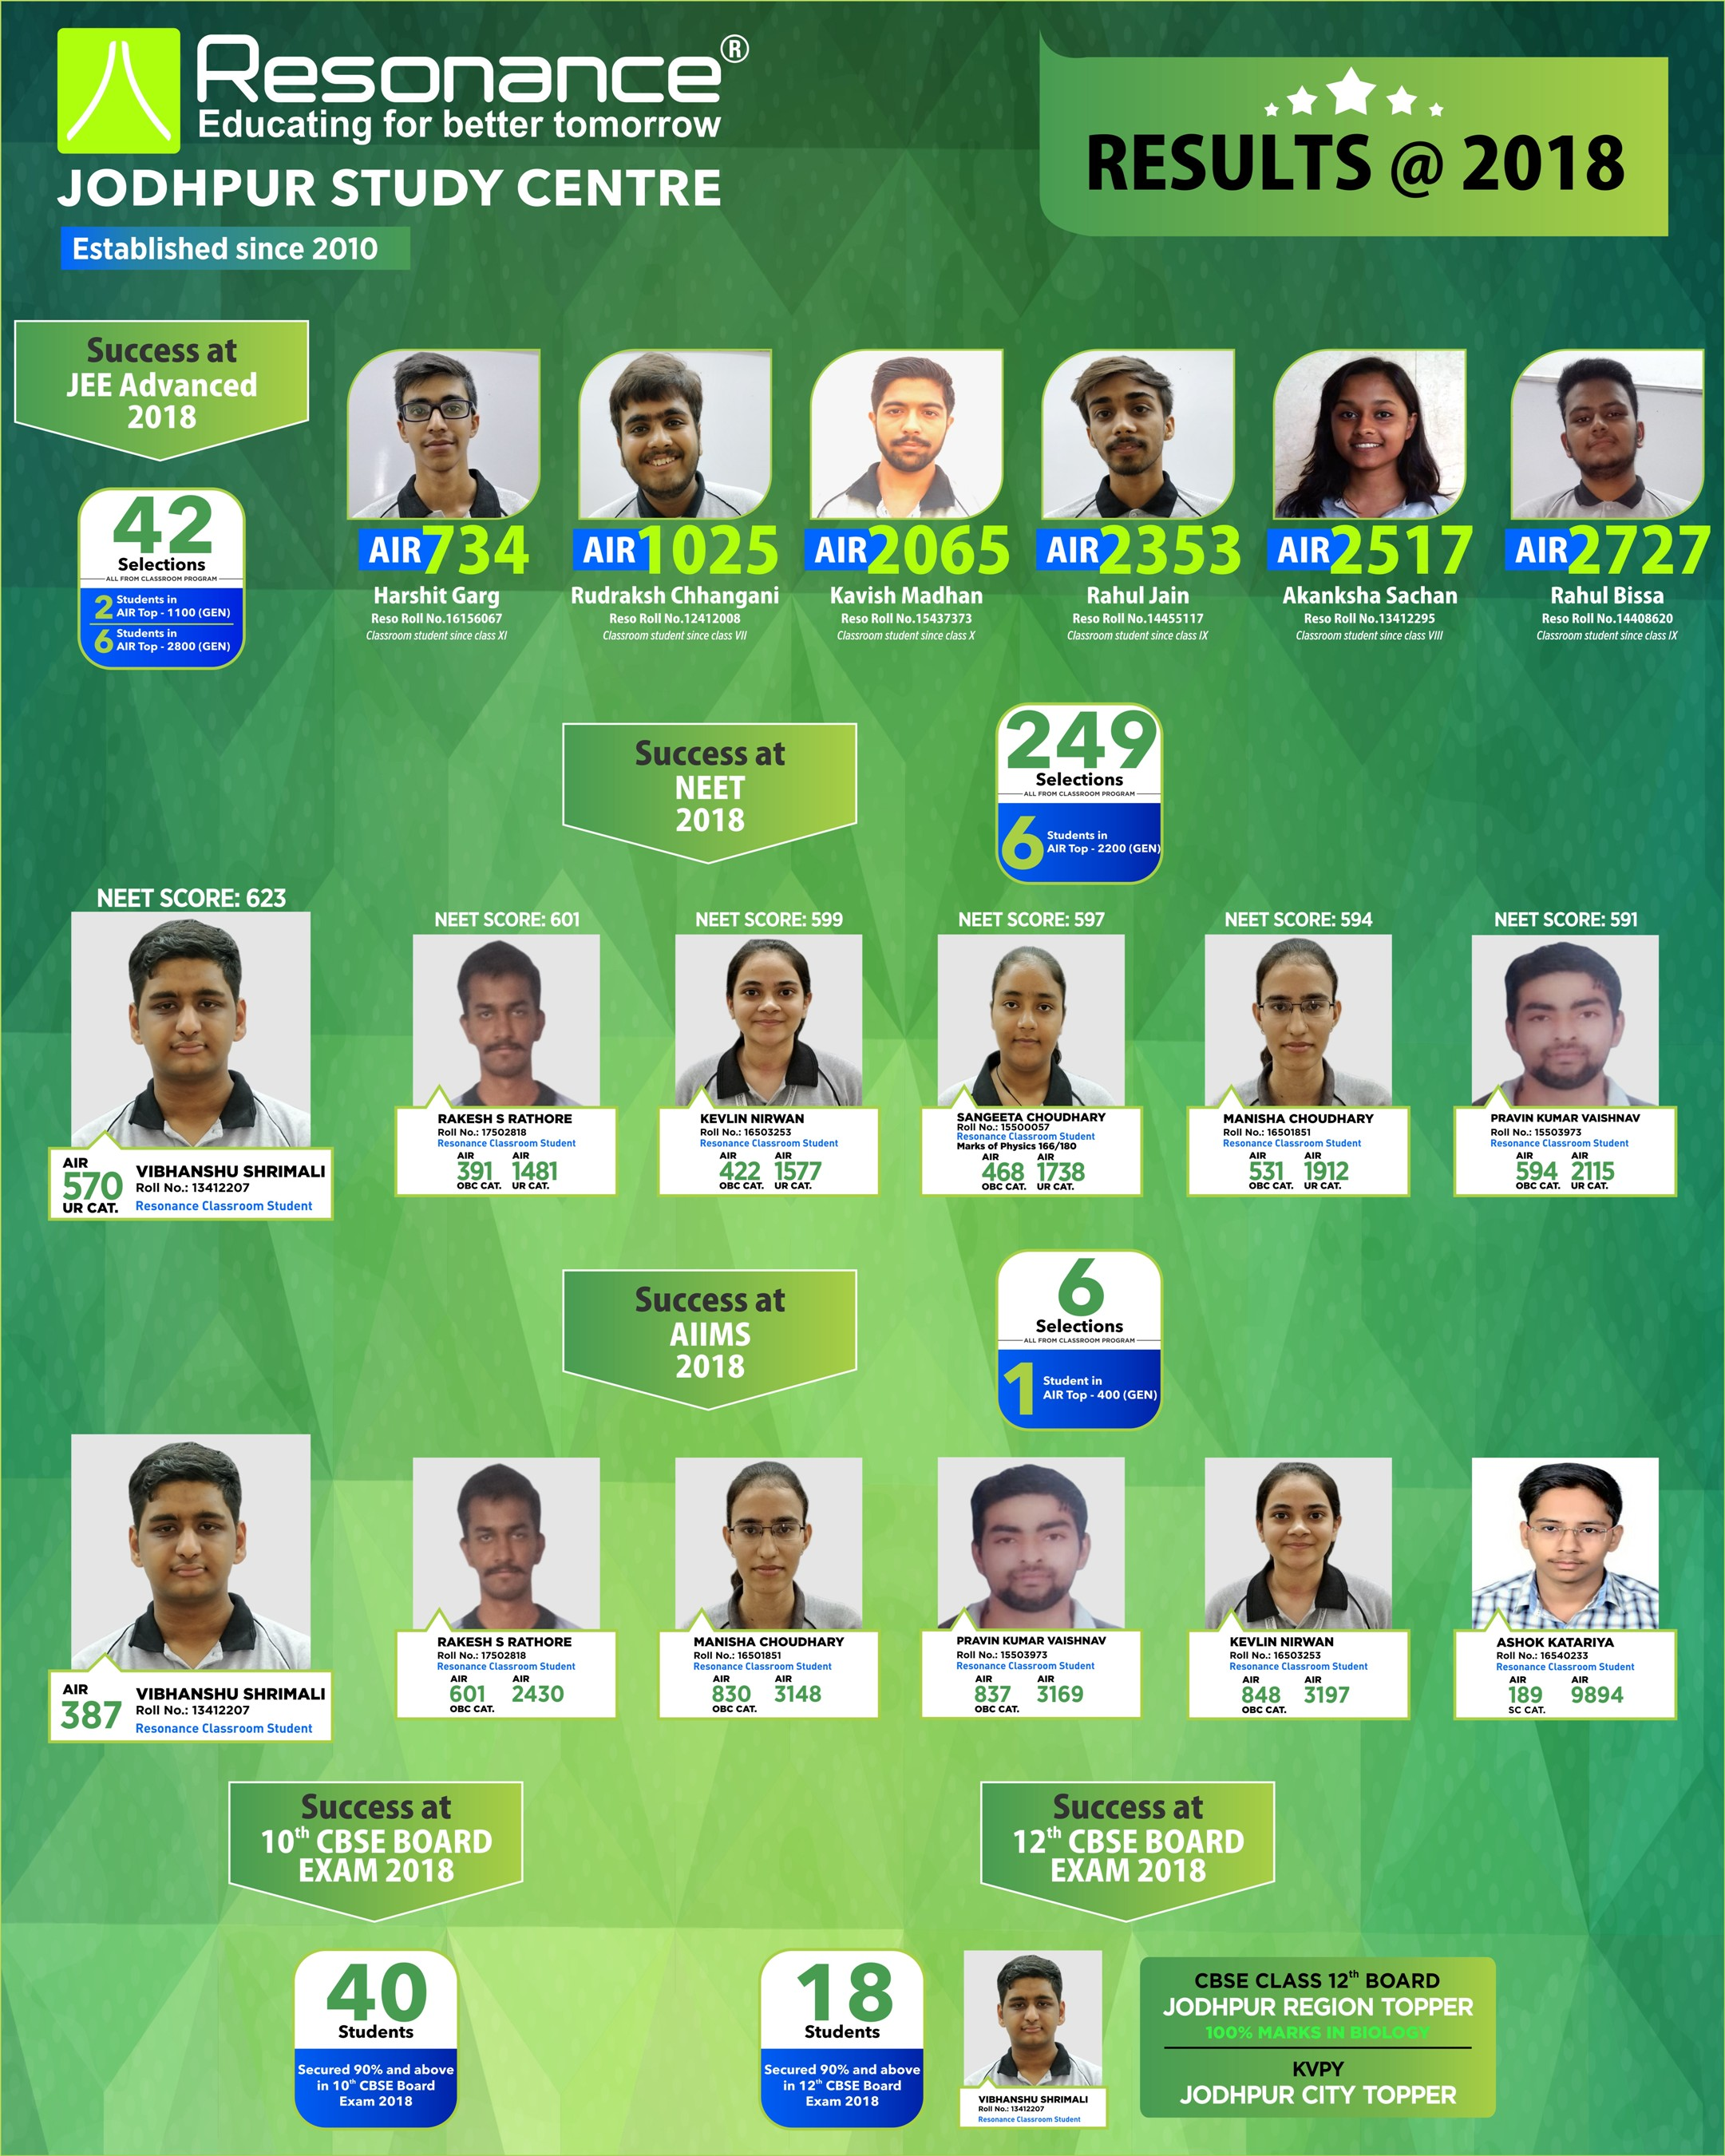 Results @ 2018 of Jodhpur Centre